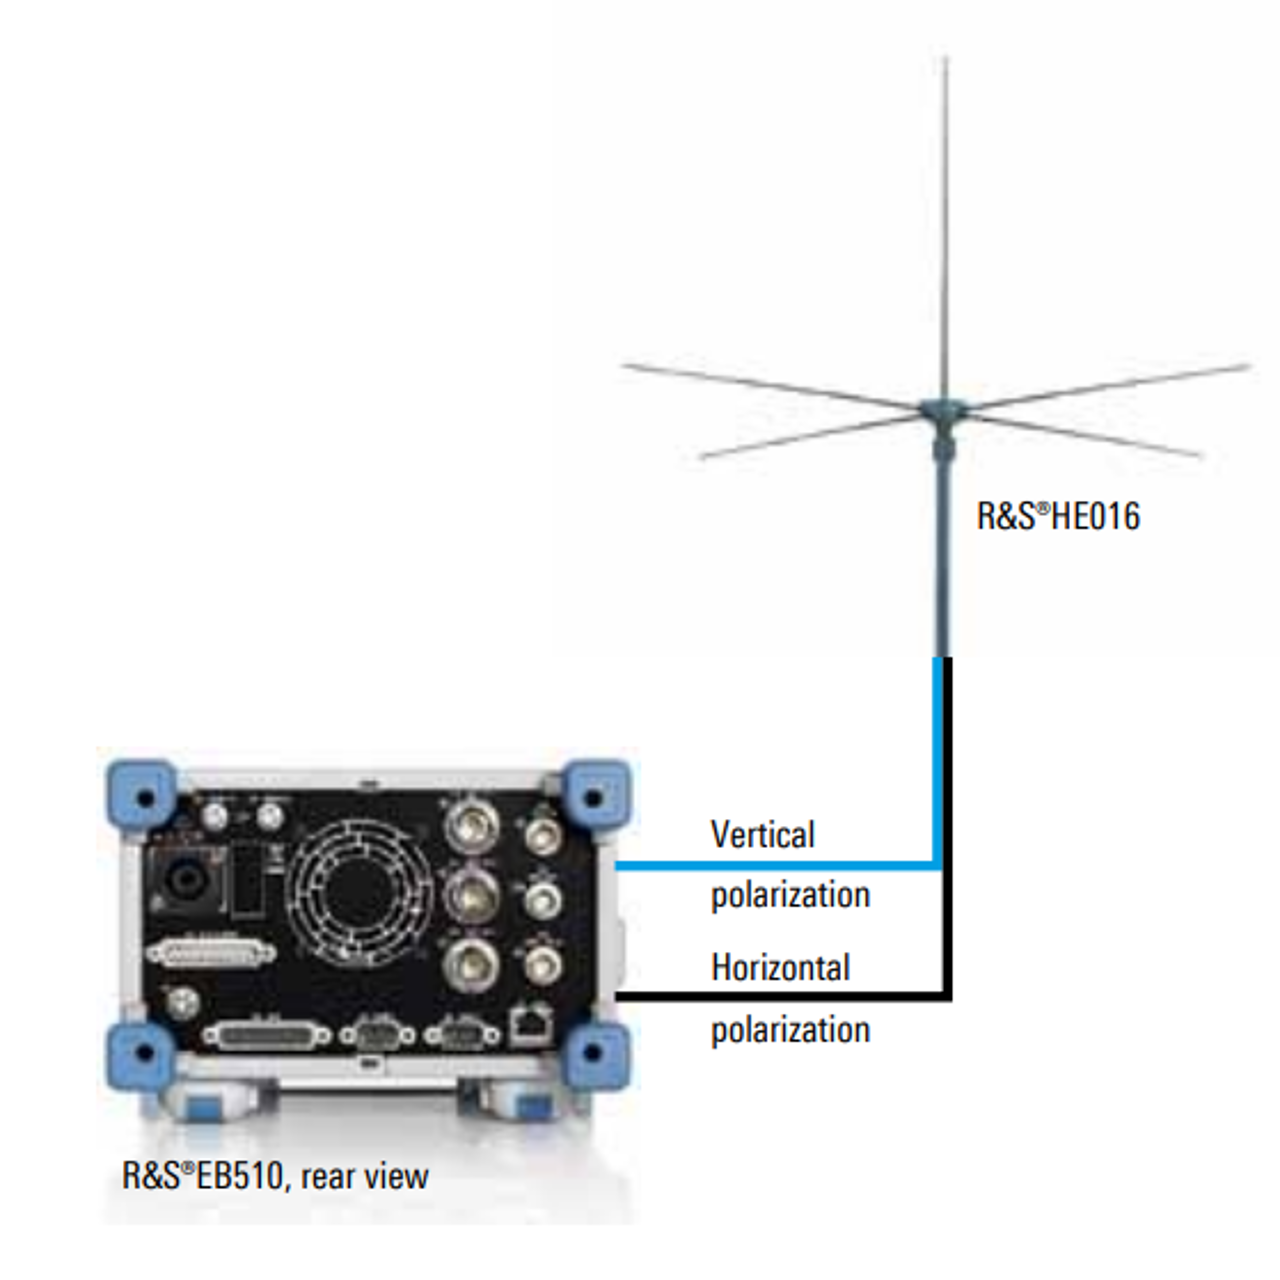 Easy HF monitoring setup with the EB510